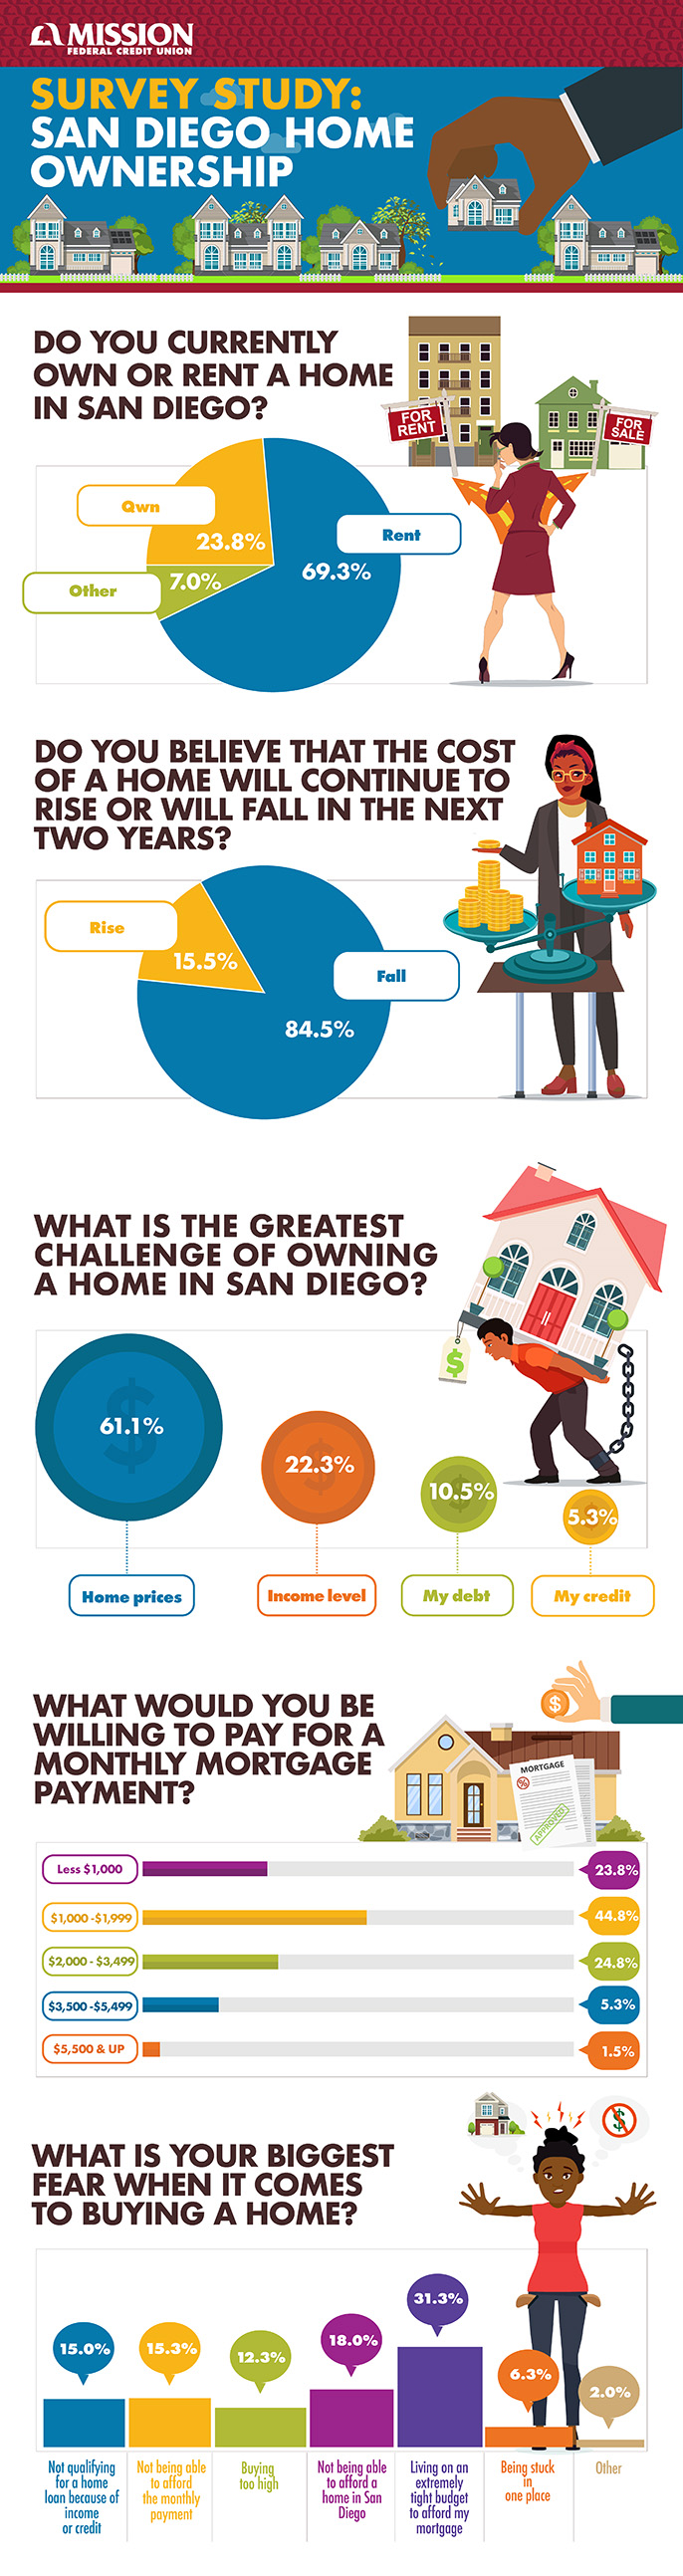 Survey Study: San Diego Home Ownership infographic.